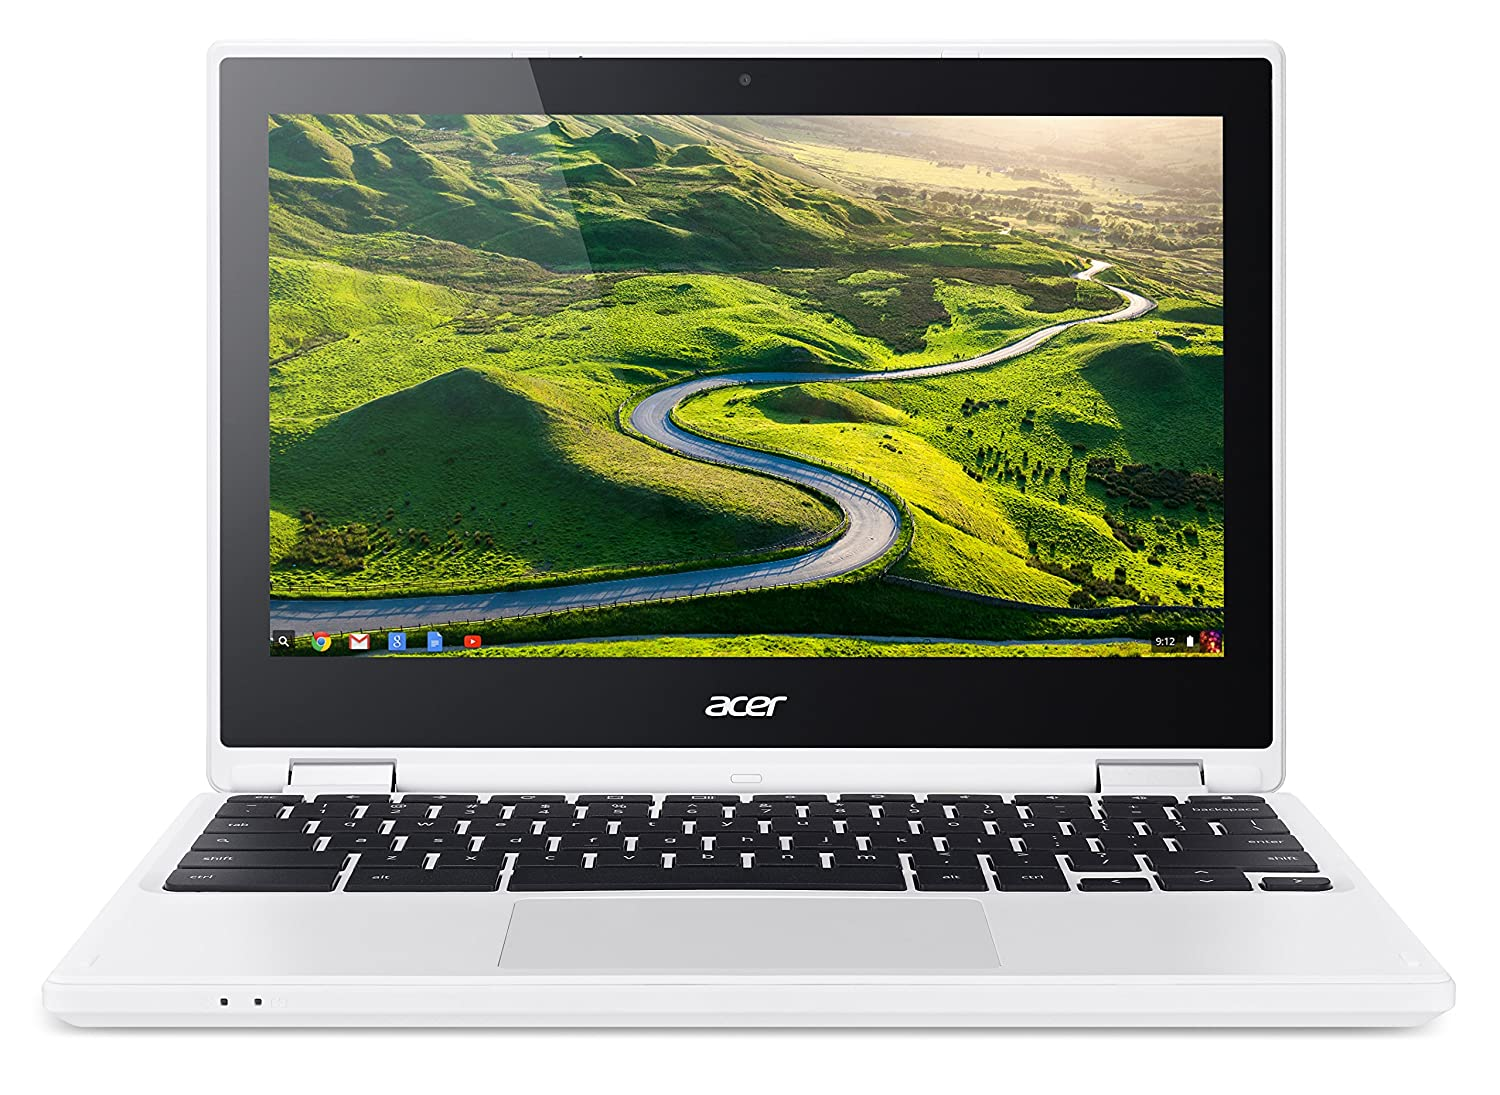 Acer Chromebook CB5-132T - Intel Celeron N3150, 4 GB de RAM, Disco SSD 32 GB, Chrome - Gris